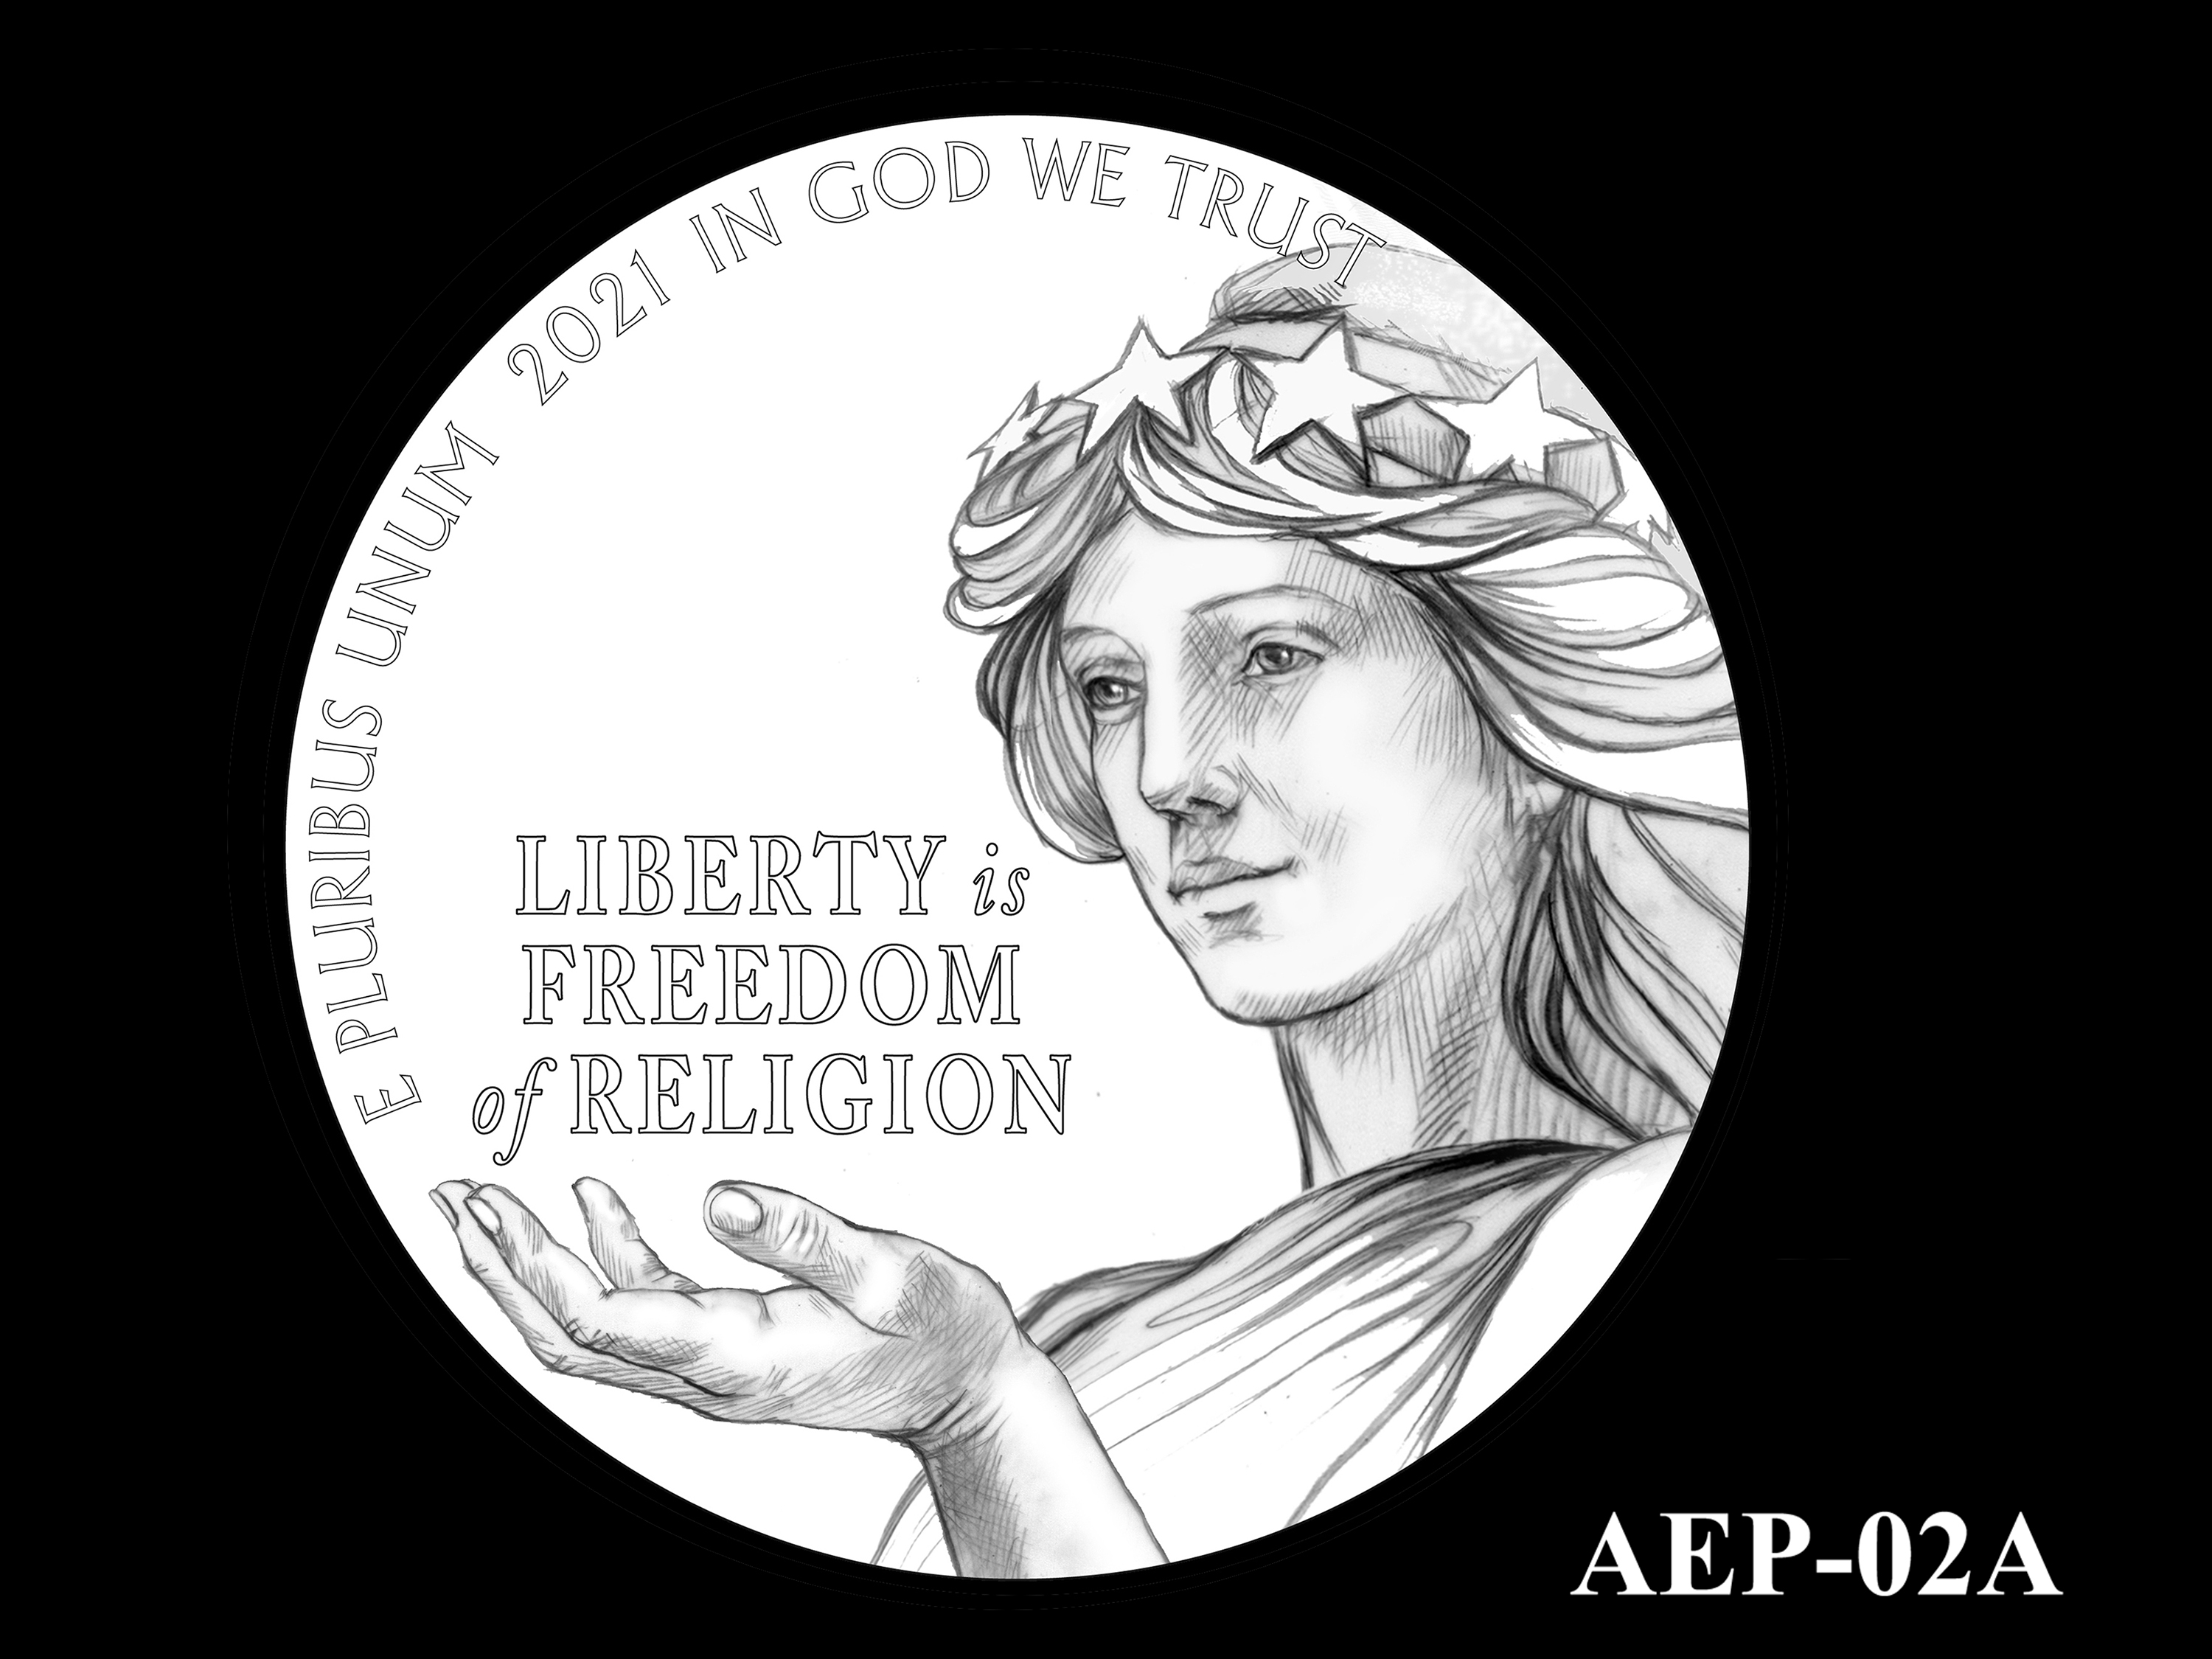 AEP-02A -- 2021 American Eagle Platinum Proof Program